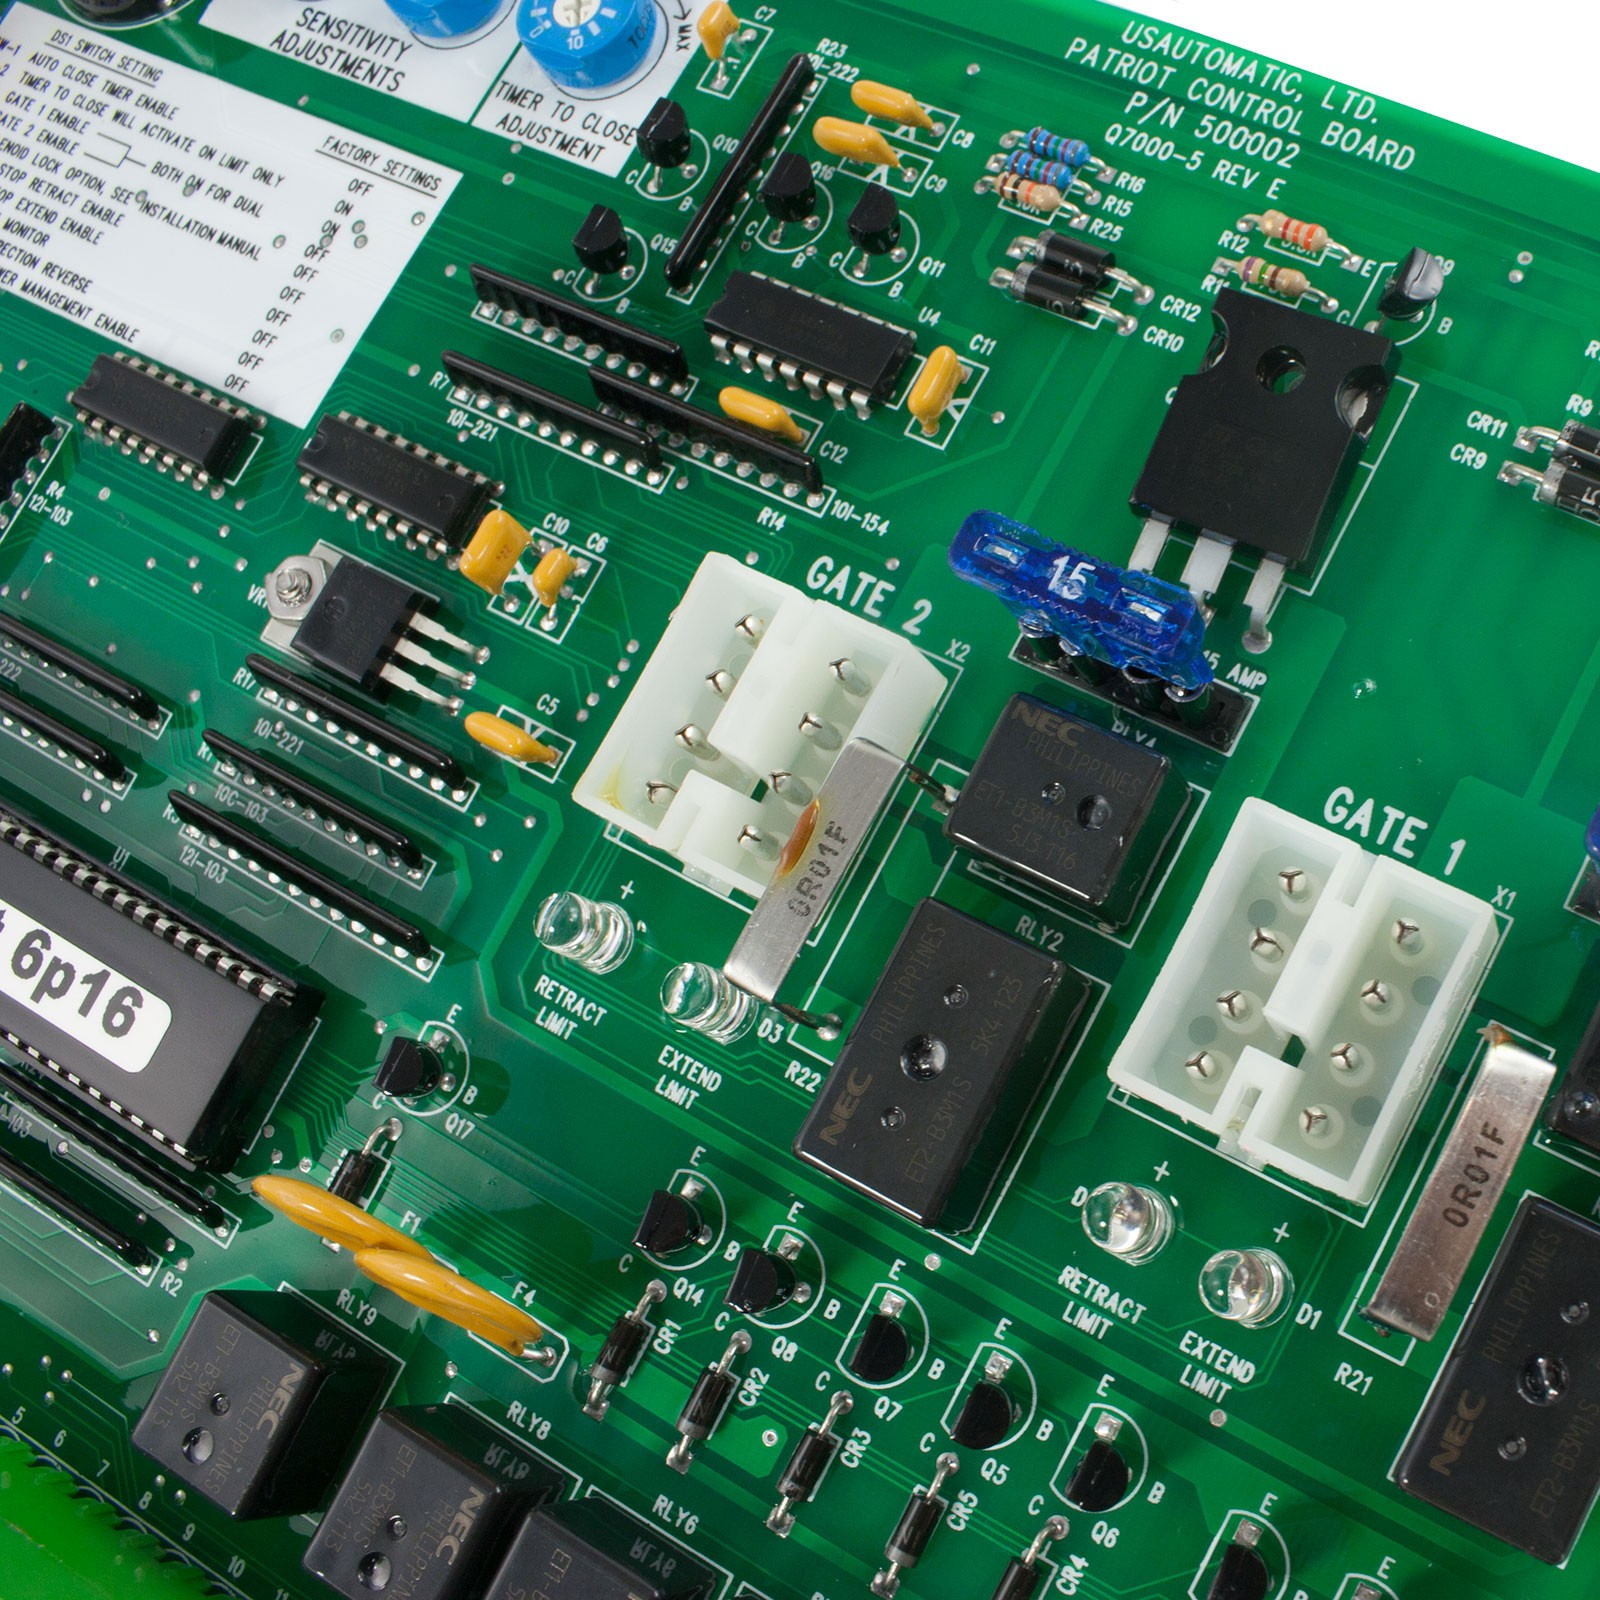 Gate Circuit Board Close Up Not Lossing Wiring Diagram Green Computer With Electronics Components And Control For Patriot Ul325 2016 Usautomatic 500002 Rh Usautomaticgateopeners Com Boards Gol Drawing